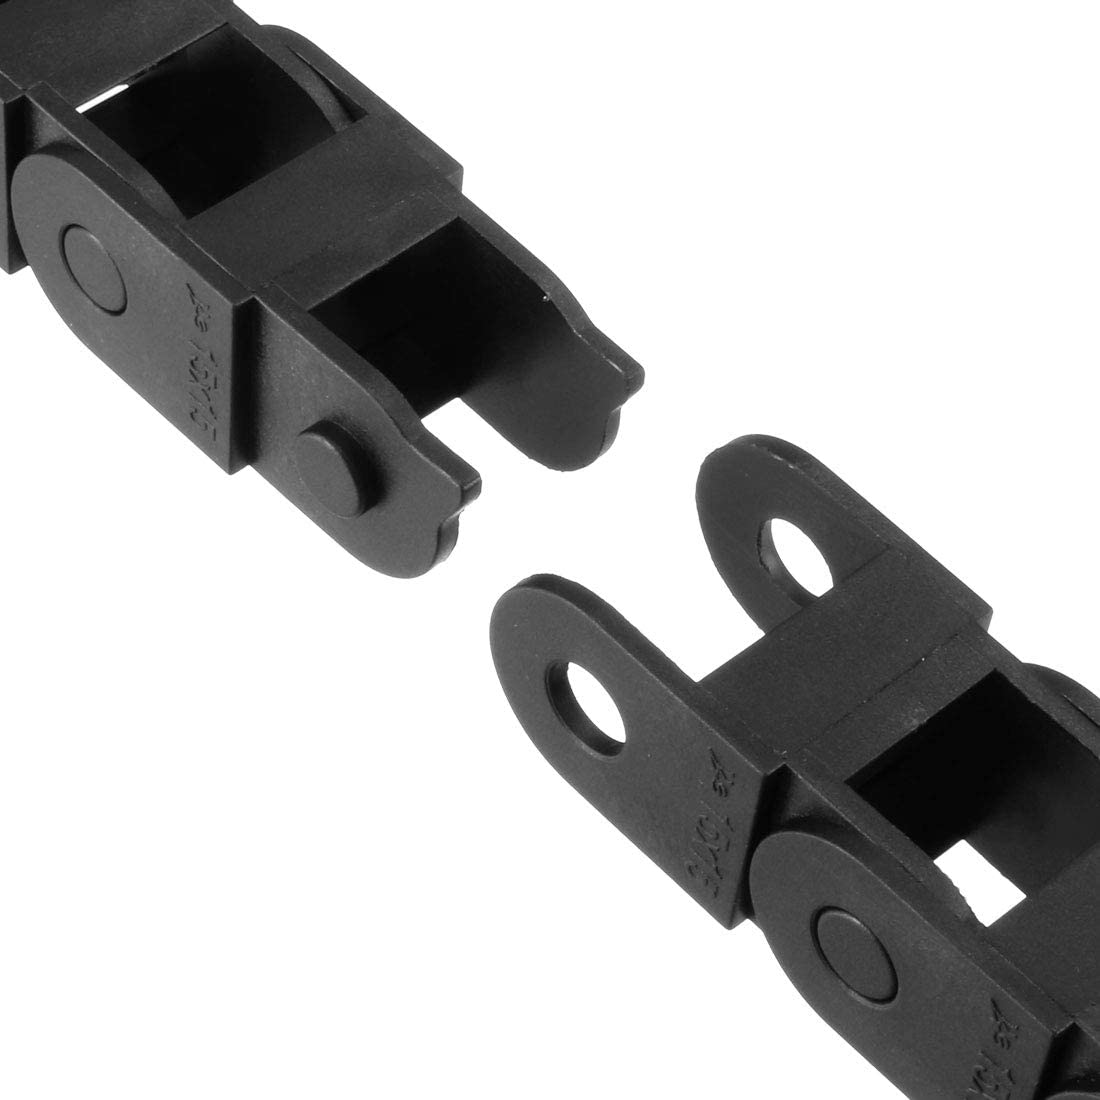 uxcell Drag Chain Cable Carrier Open Type with End Connectors R18 10X11mm 1 Meter Plastic for Electrical CNC Router Machines Black